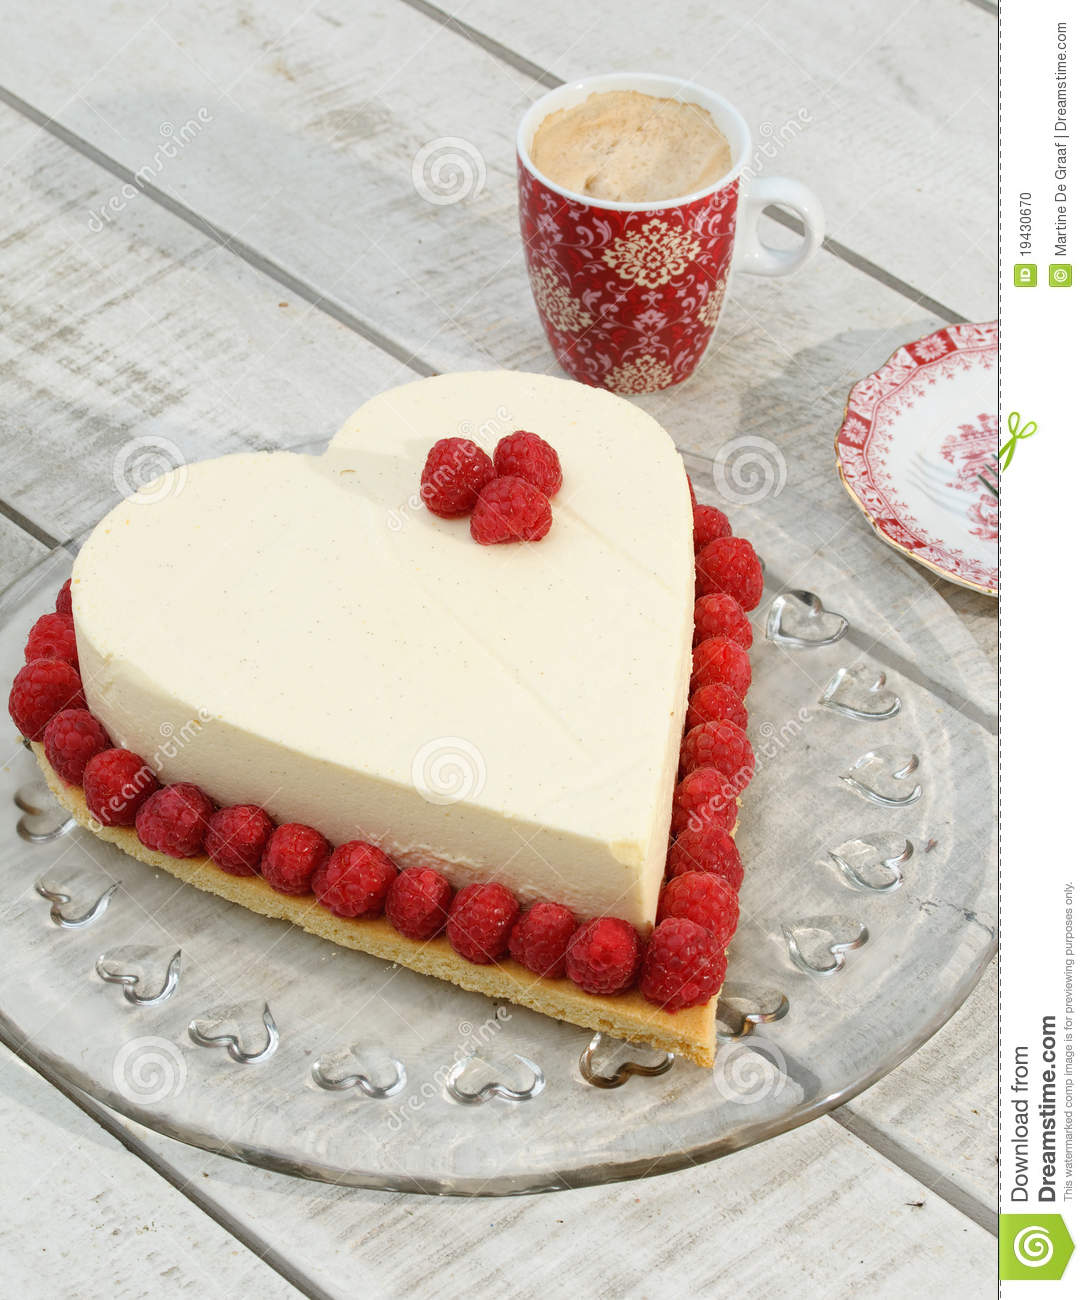 Heart Shaped Cake Stock Photos : Heart Cake Stock Photo - Image: 19430670